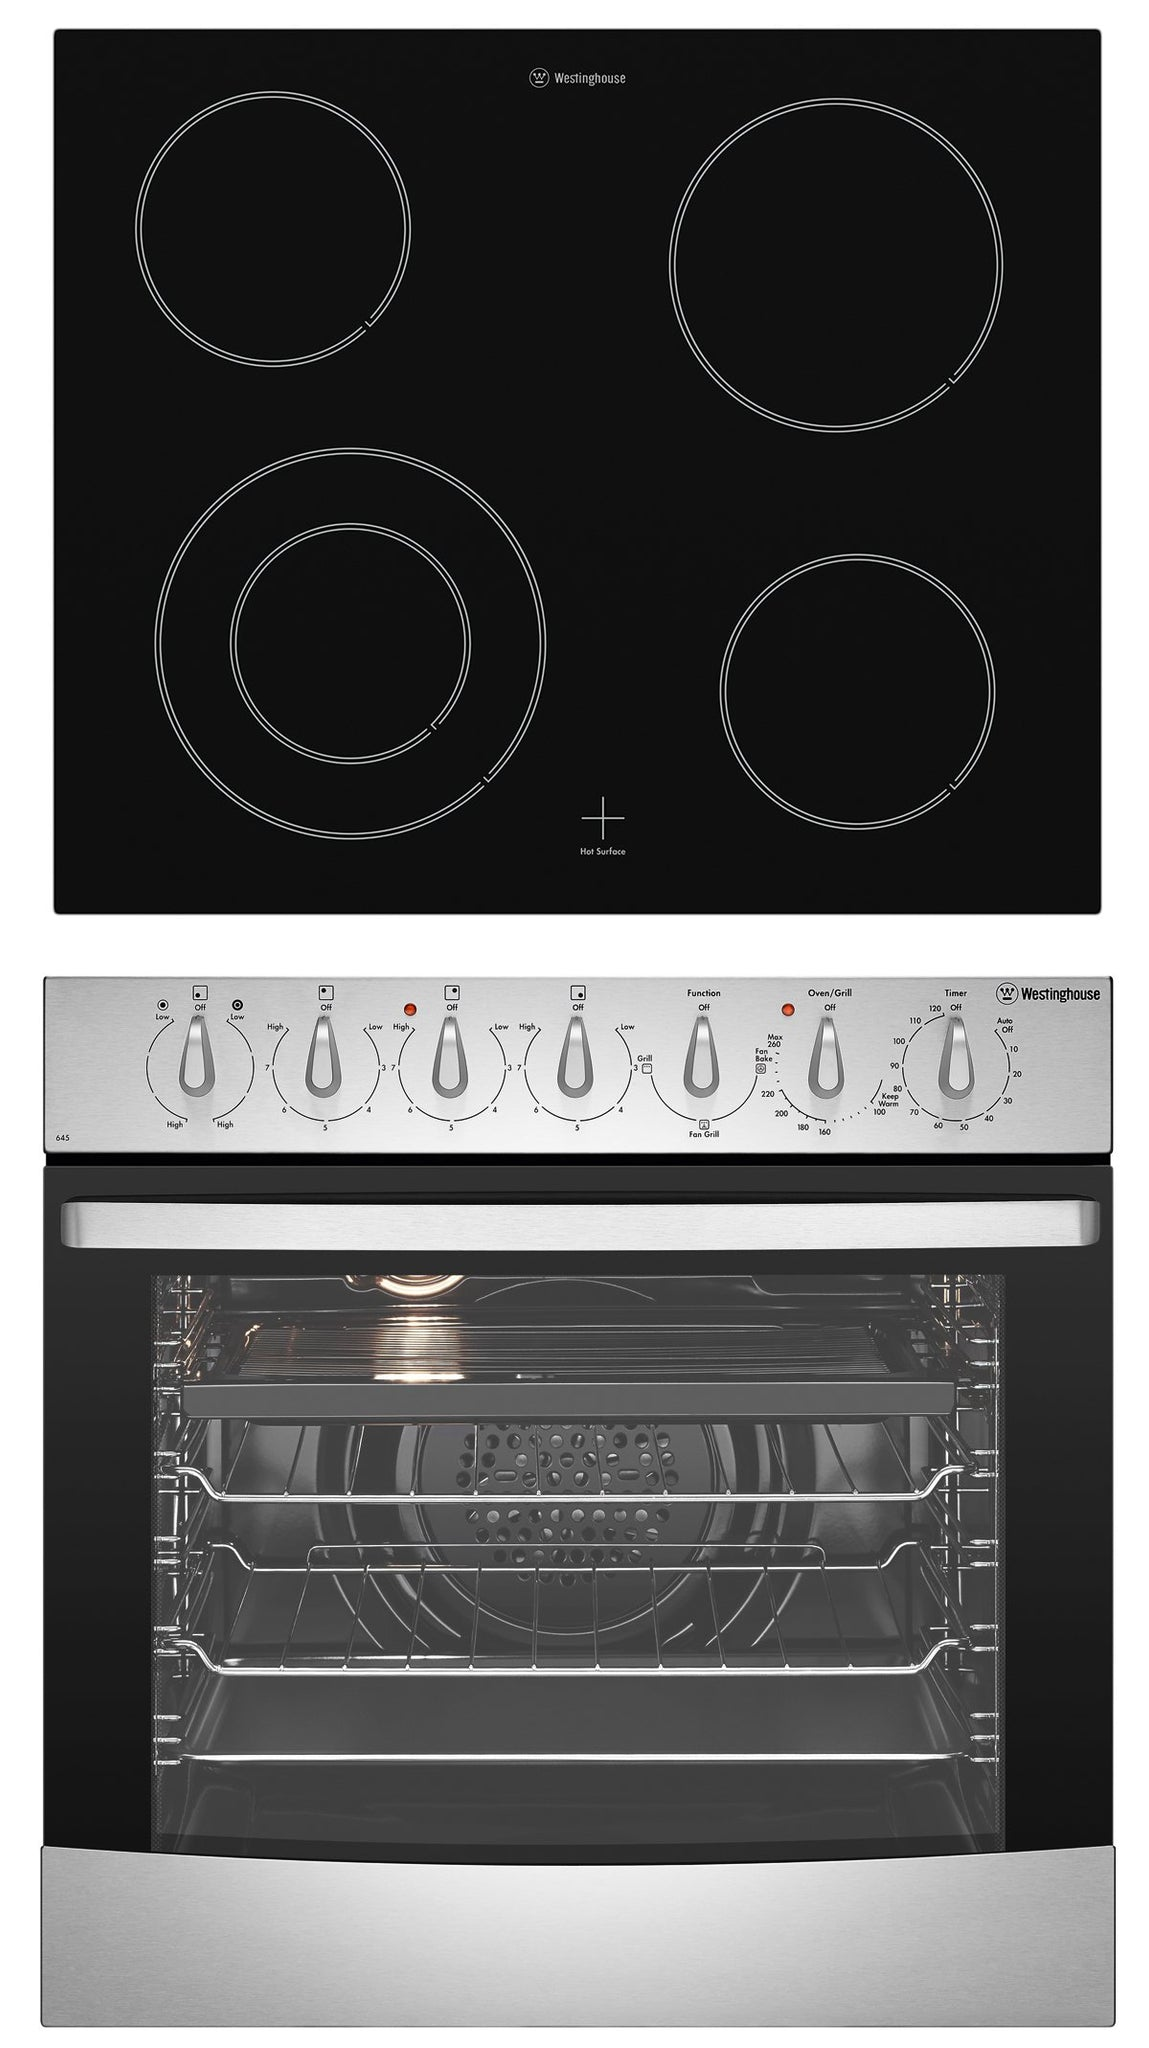 Westinghouse WVE645S Stainless Steel Fan Forced Oven & Cooktop